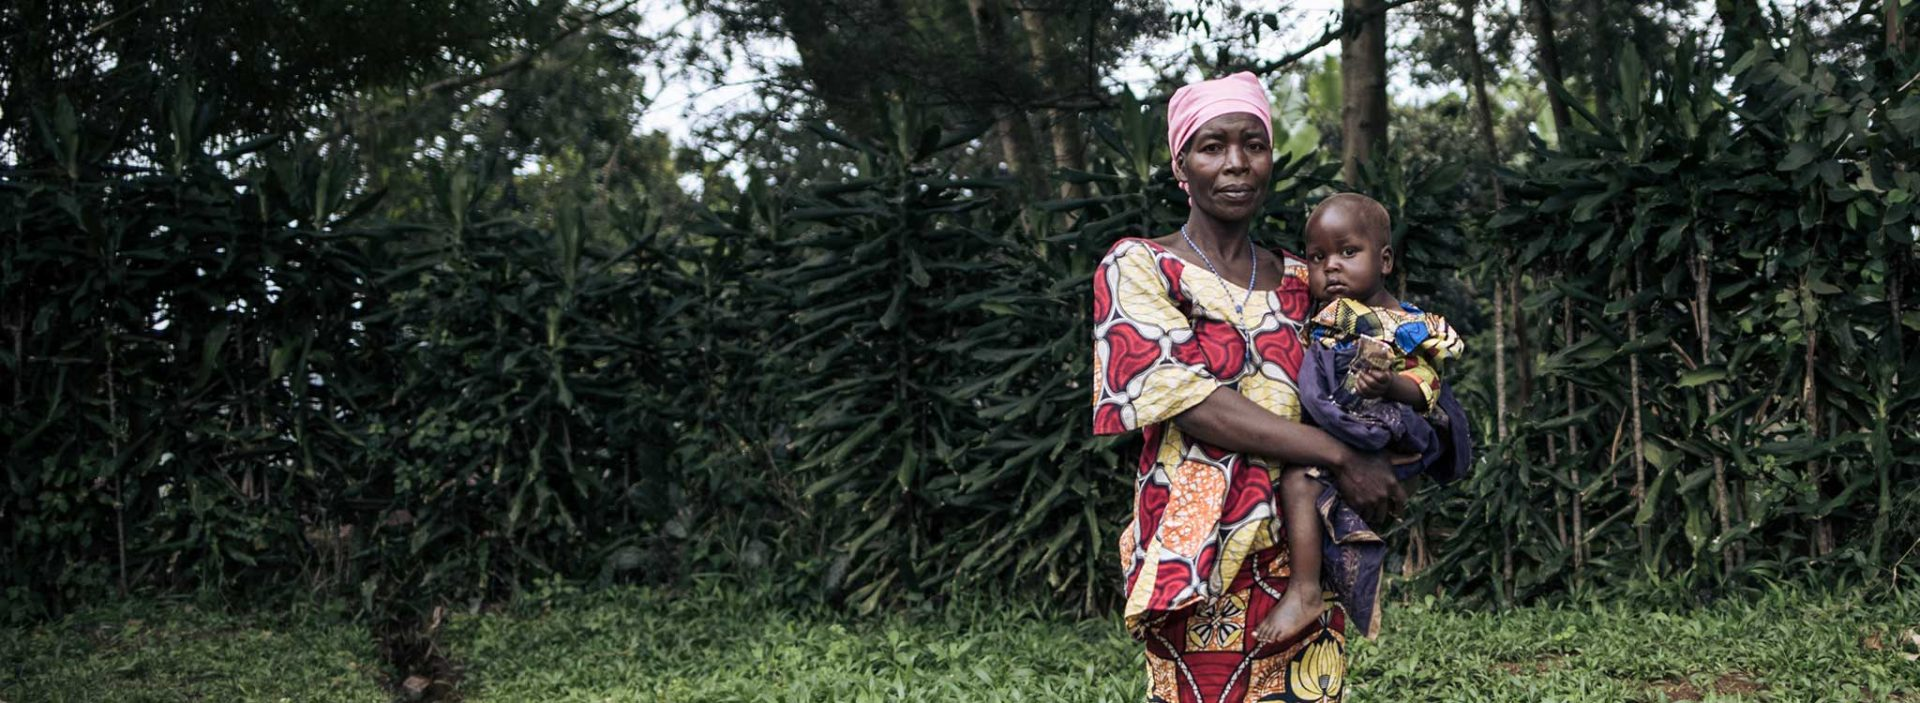 A woman and a child at an Action Against Hunger project in Democratic Republic of Congo.